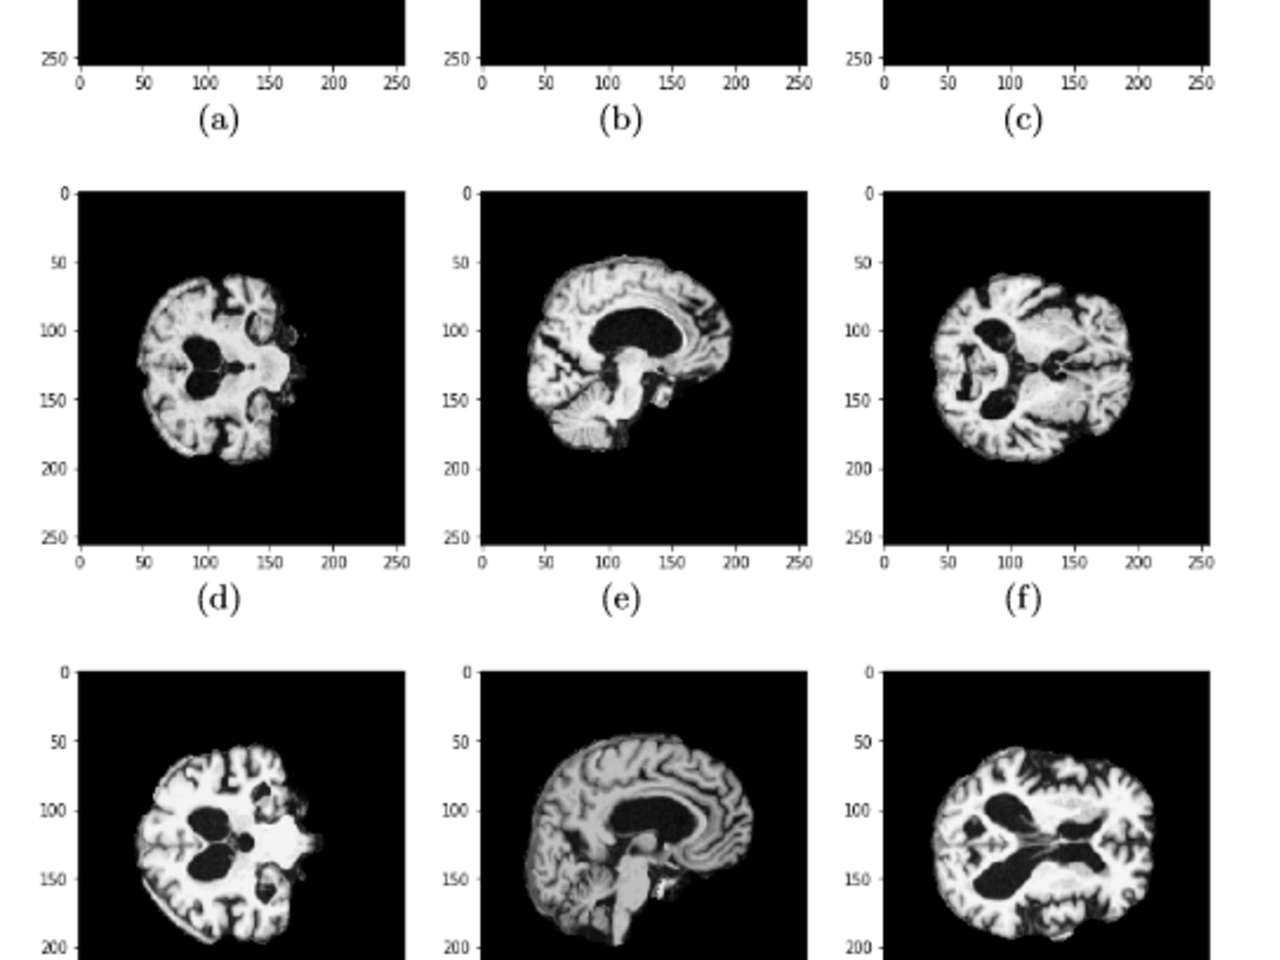 Early Diagnosis of Alzheimer's Disease from 3D brain MRI using Deep